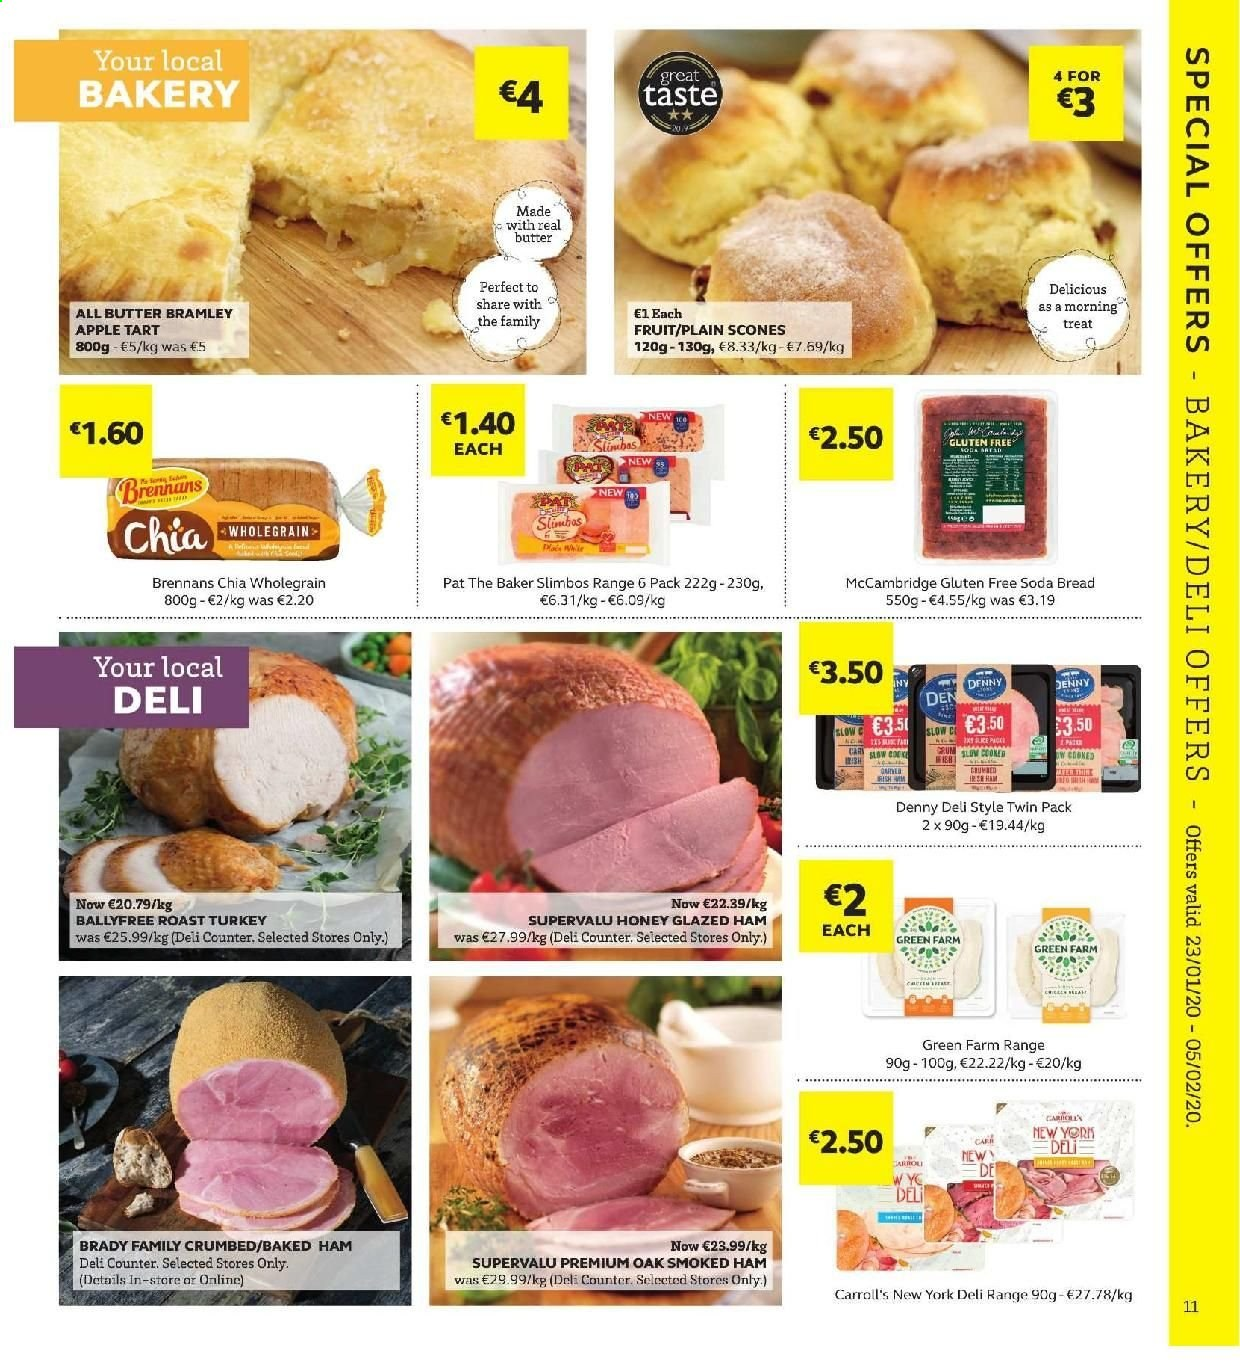 SuperValu offer  - 23.1.2020 - 5.2.2020 - Sales products - bread, soda bread, tart, ham, smoked ham, butter, turkey. Page 11.